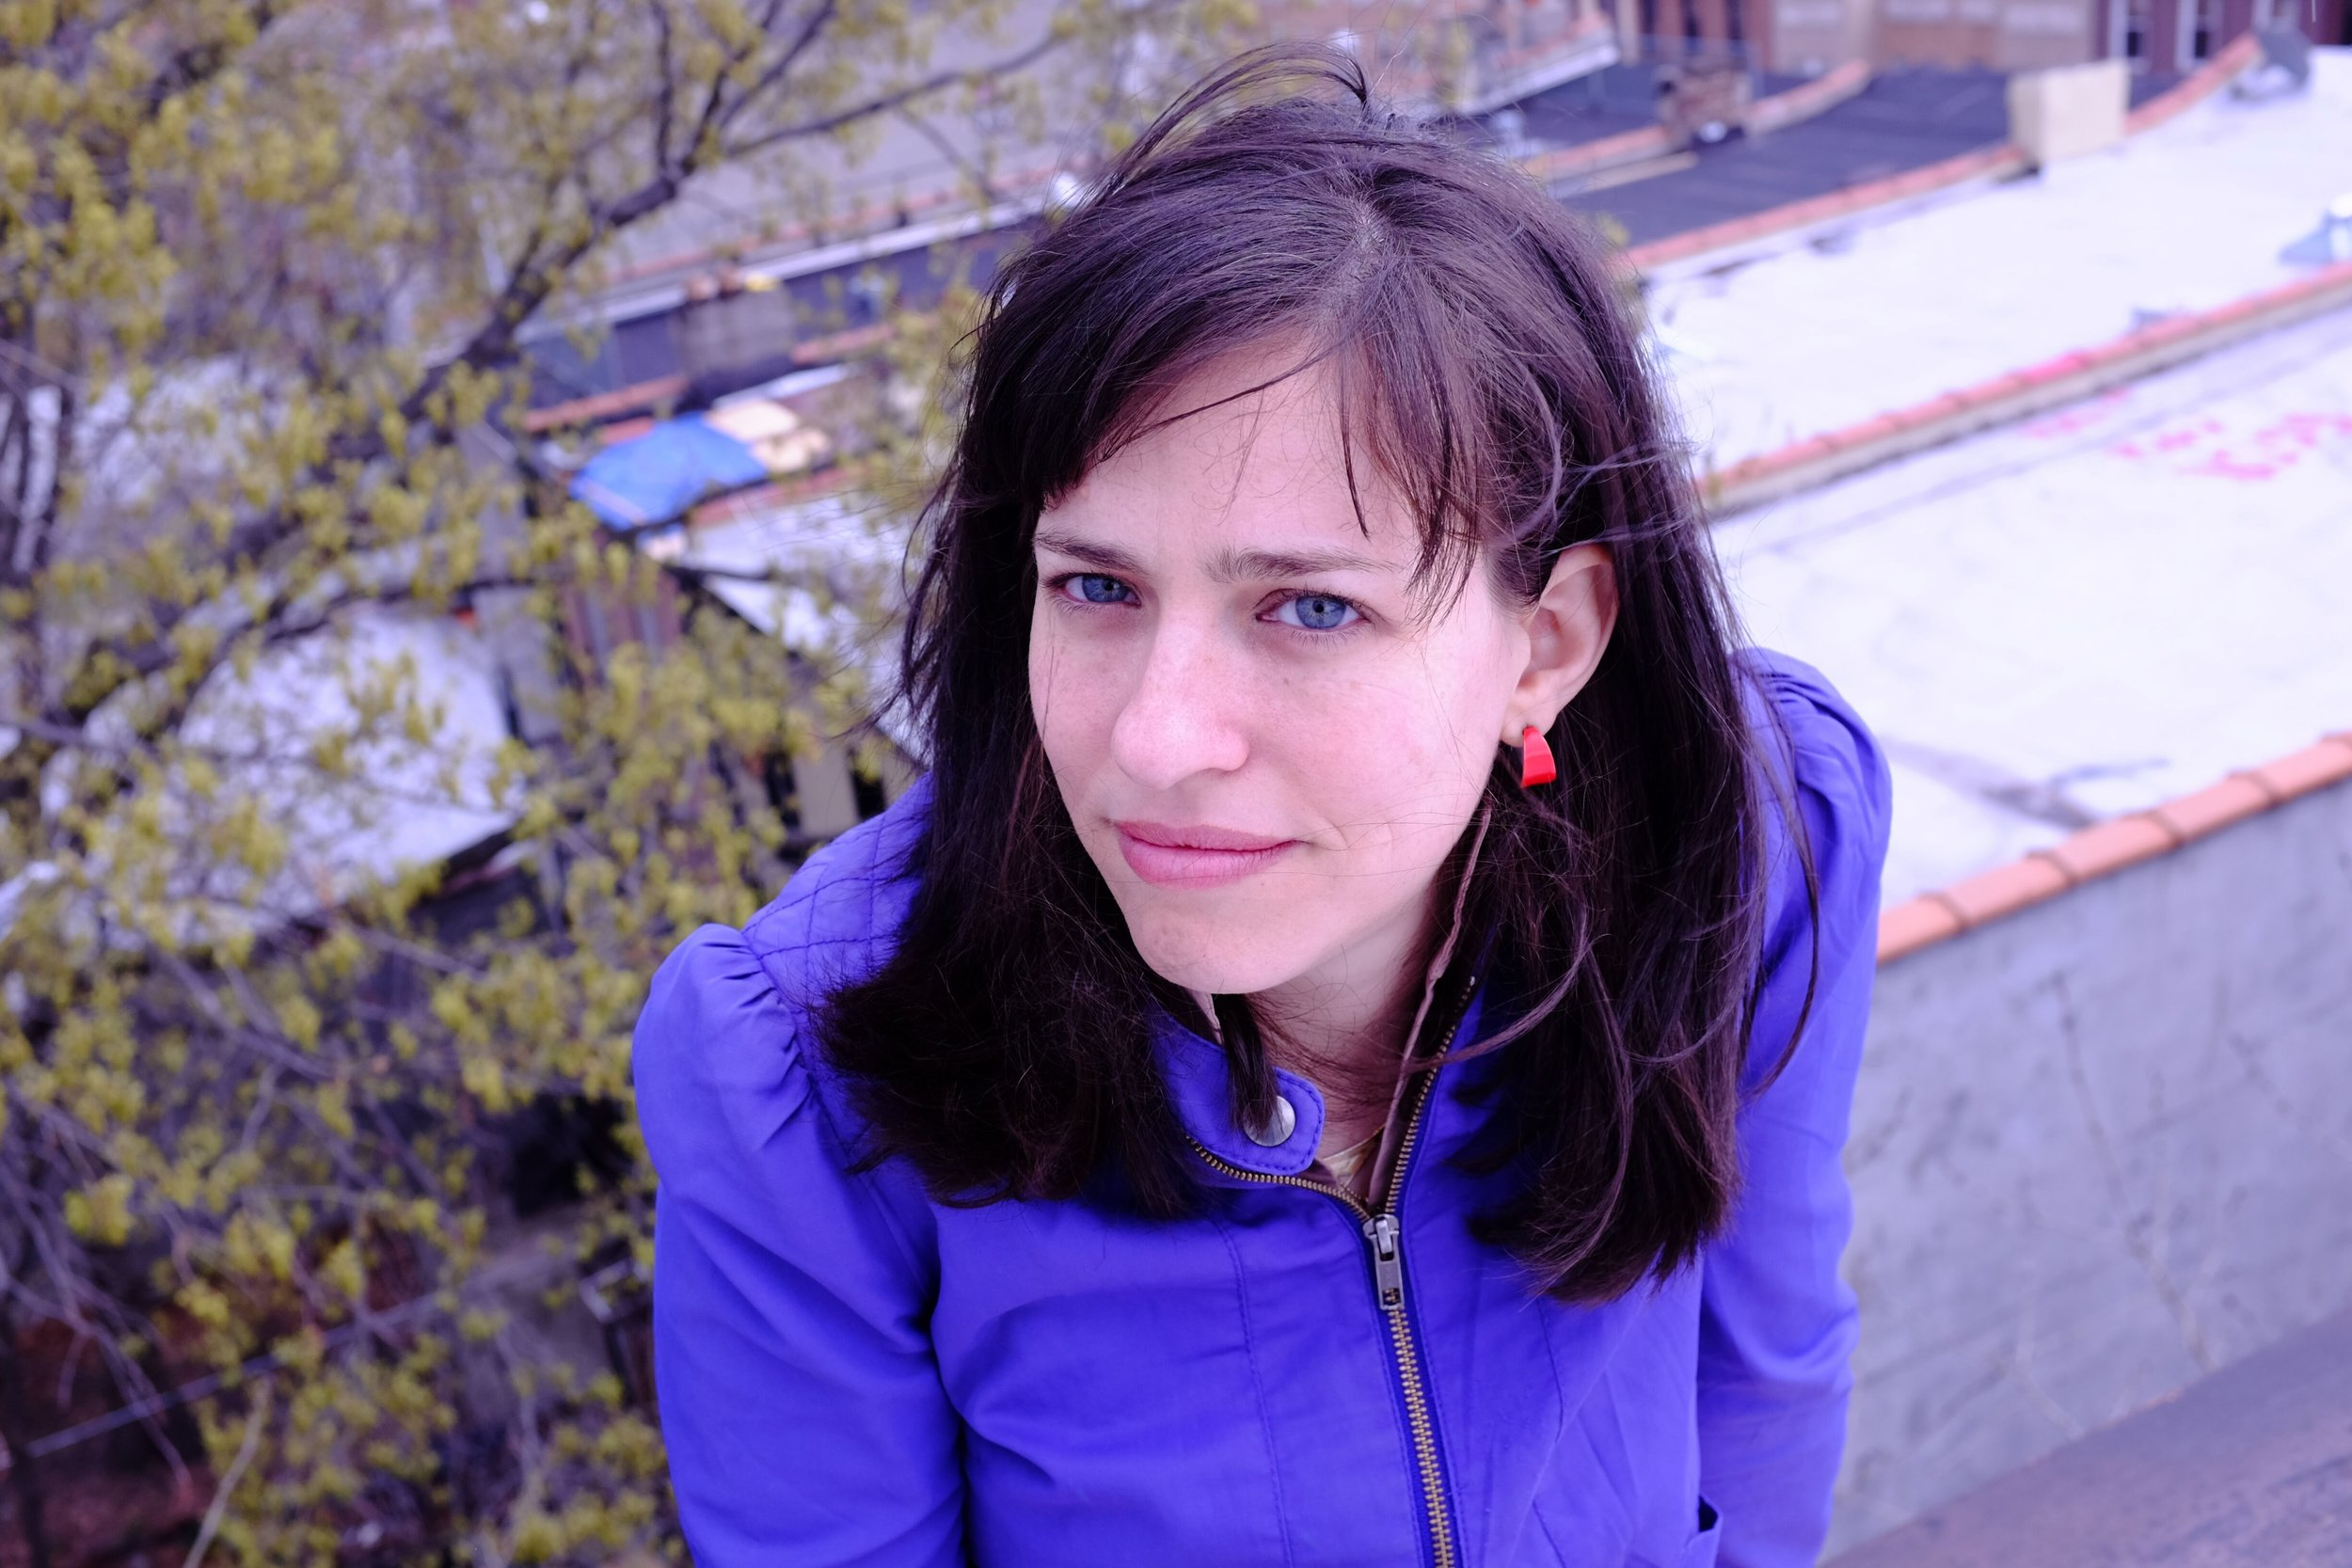 SHELLY ORIA   is the author of New York 1, Tel Aviv 0 (2014) and coauthor of the digital novella CLEAN which received two Lovie Awards from the International Academy of Digital Arts and Sciences. Her fiction has appeared in The Paris Review. She lives in Brooklyn where she teaches at the Pratt Institute.